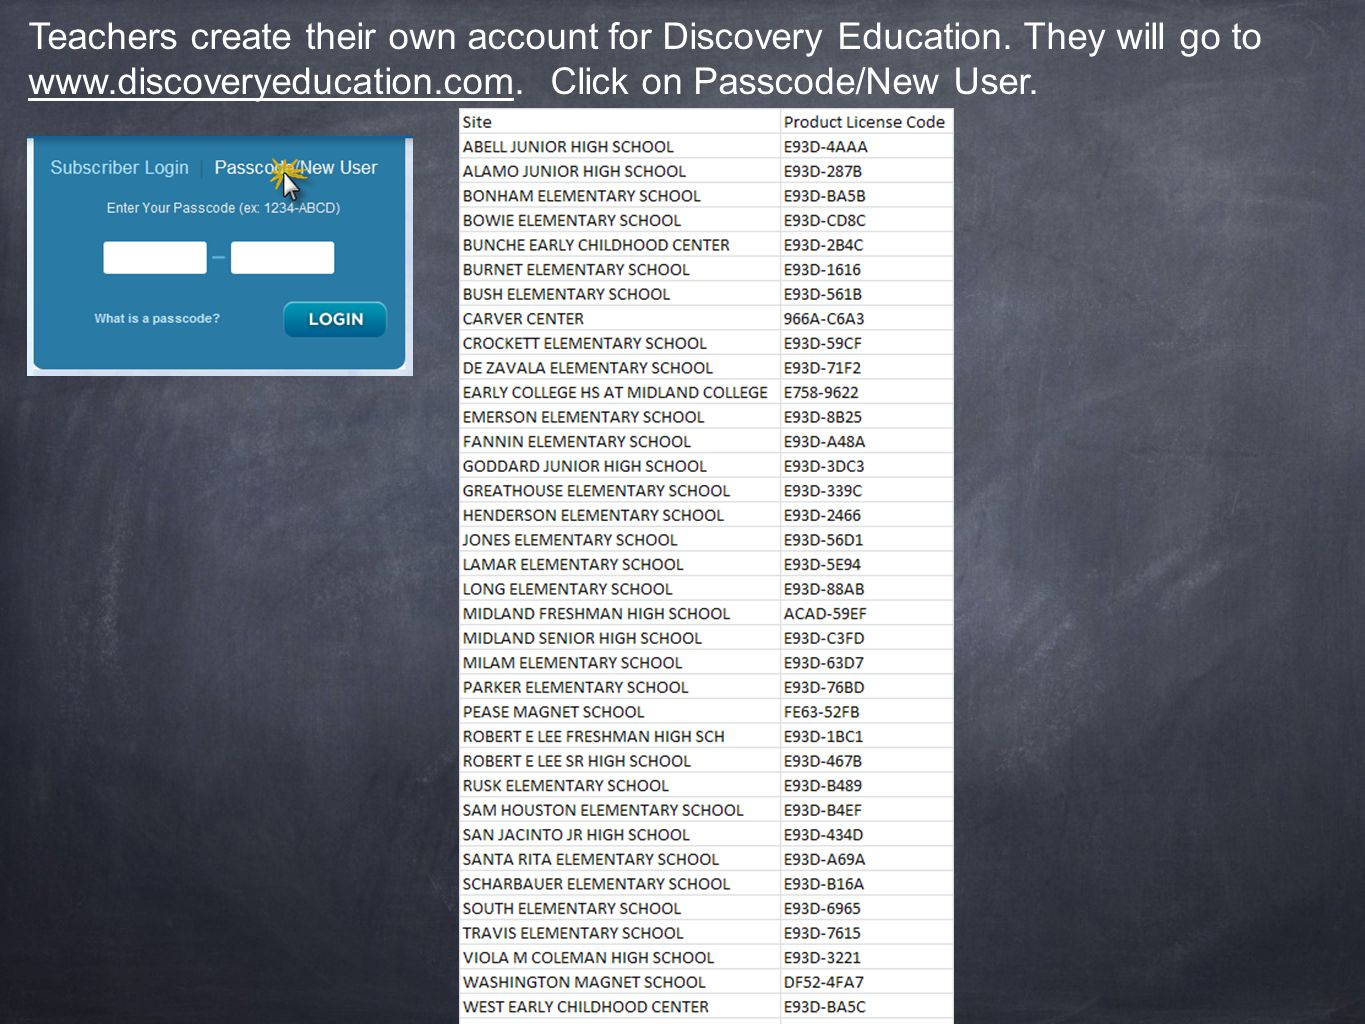 Teachers create their own account for Discovery Education.